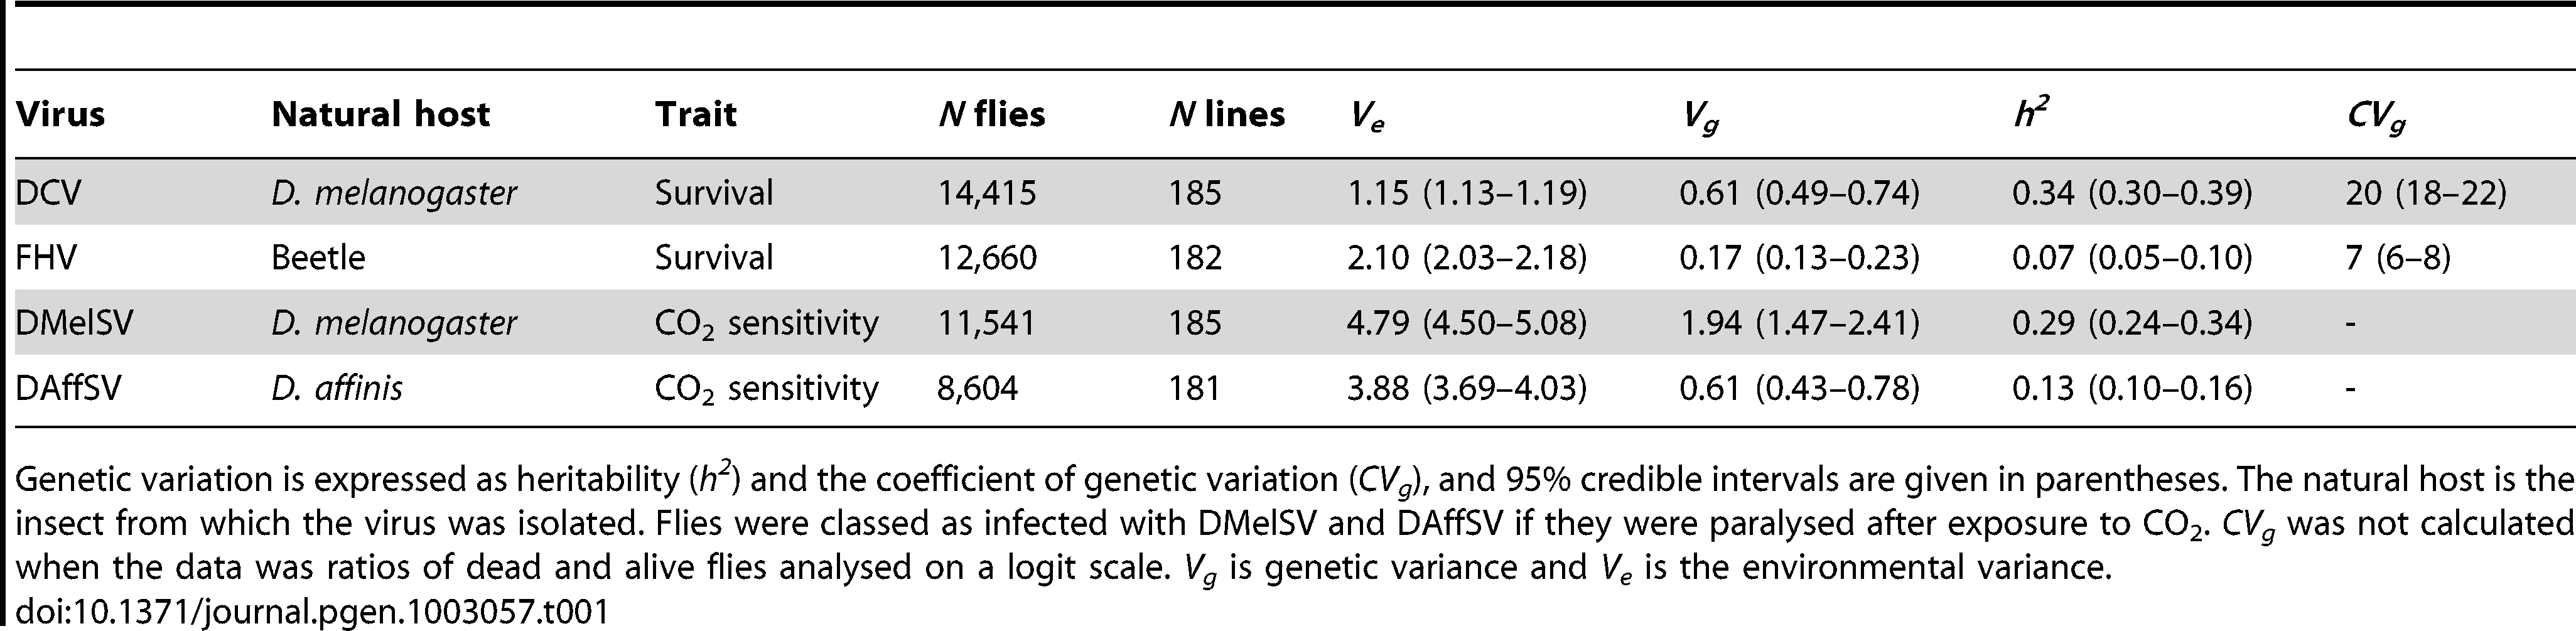 Genetic variation in susceptibility to four different viruses.